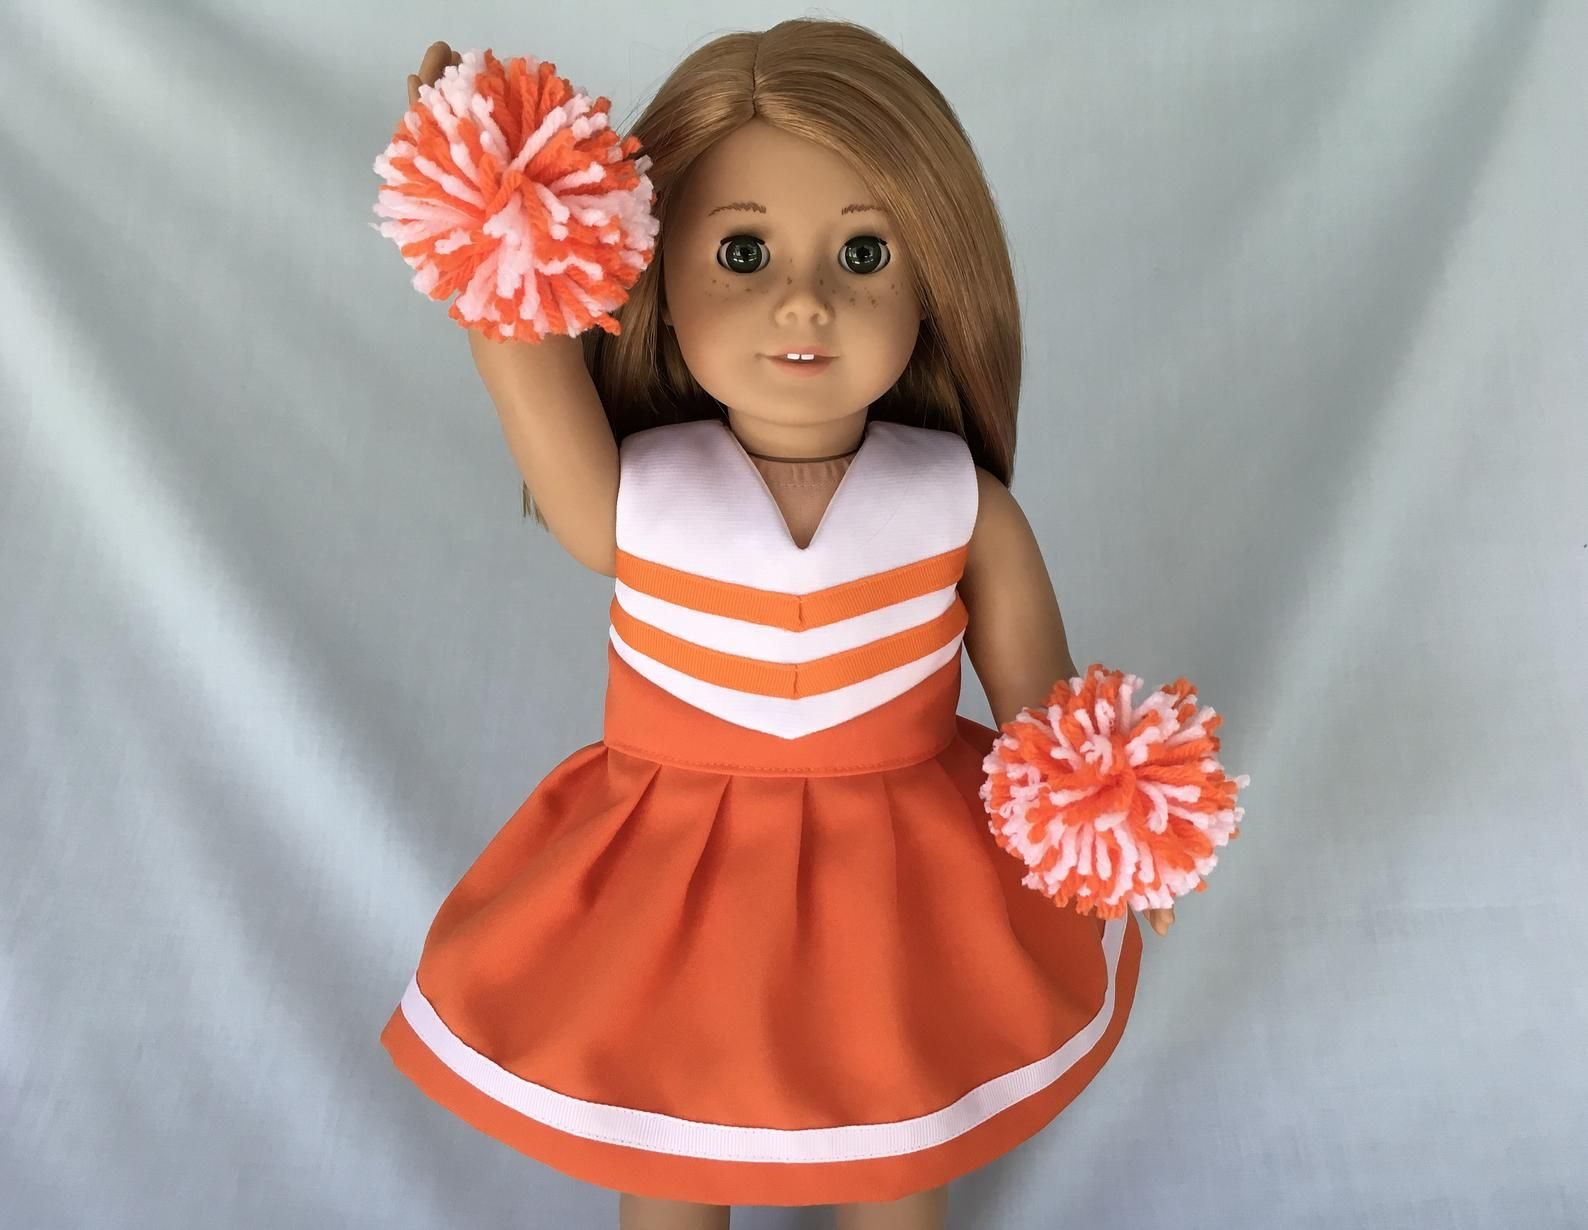 Orange and White Cheerleader/Cheer Dress for American Girl/18 Inch Doll